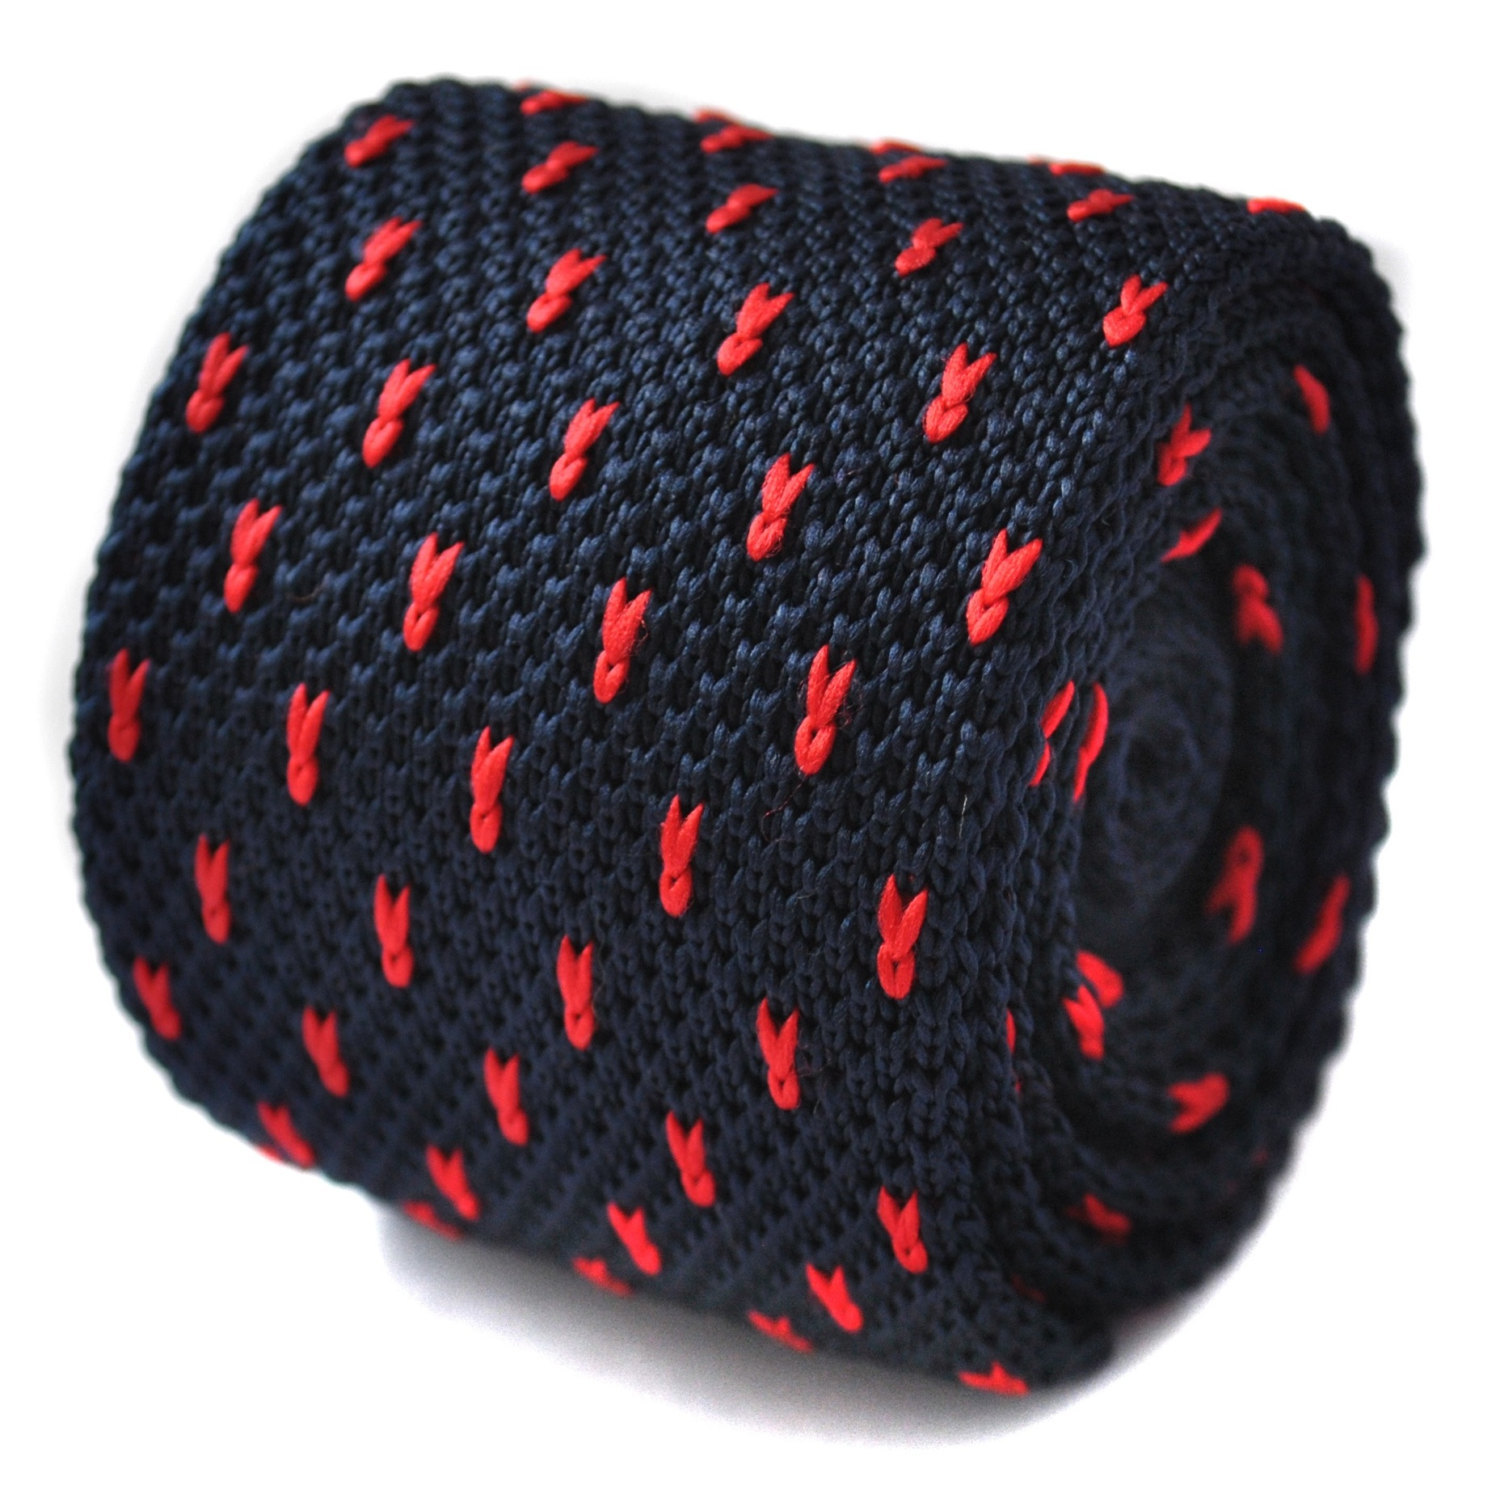 knitted navy and red pin spotted skinny tie by Frederick Thomas FT1586